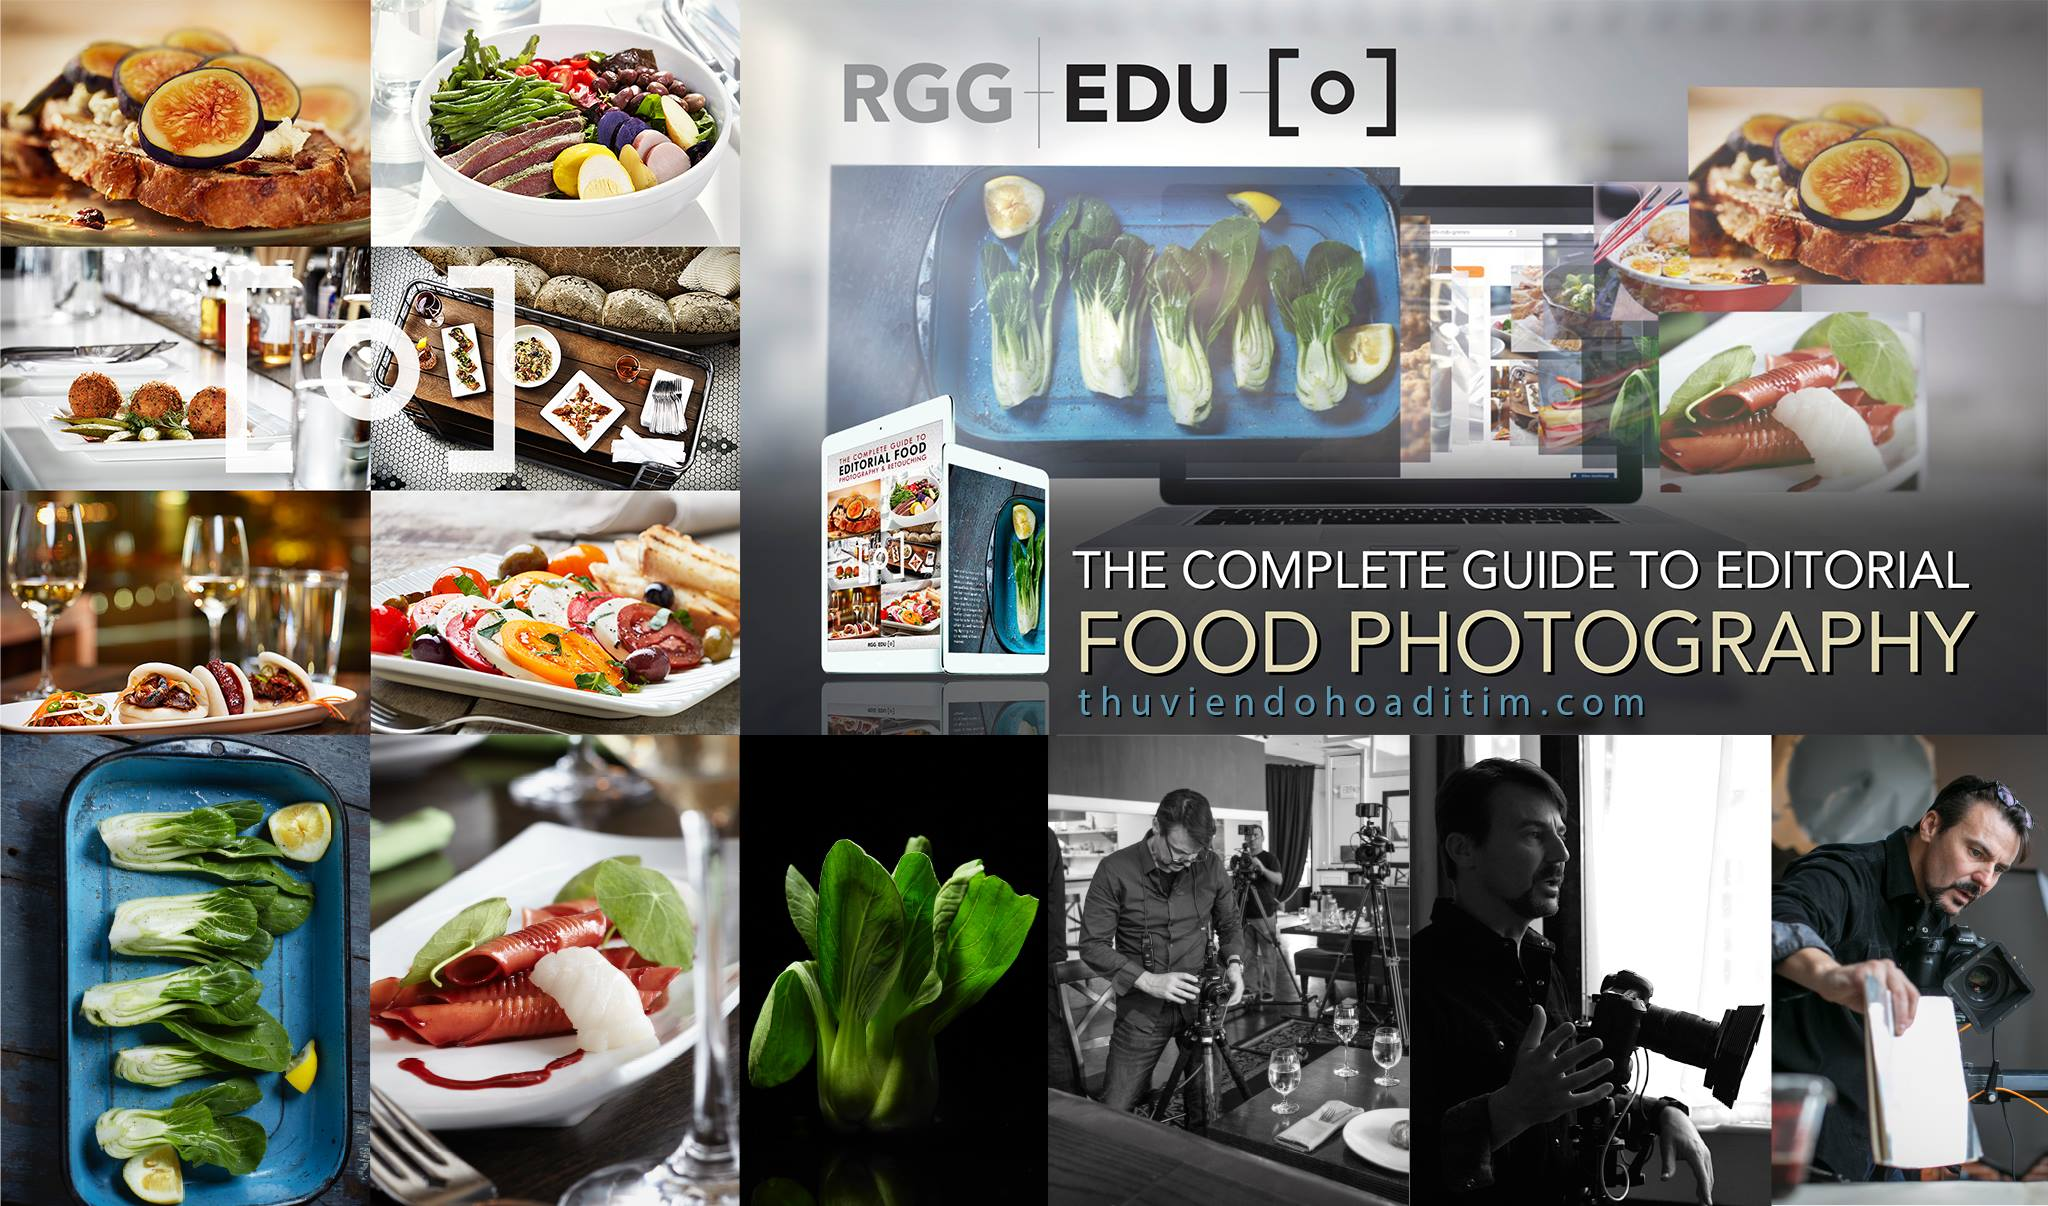 [ Tutorials ] RGGEDU - The Complete Guide To Editorial Food Photography & Photoshop Retouching